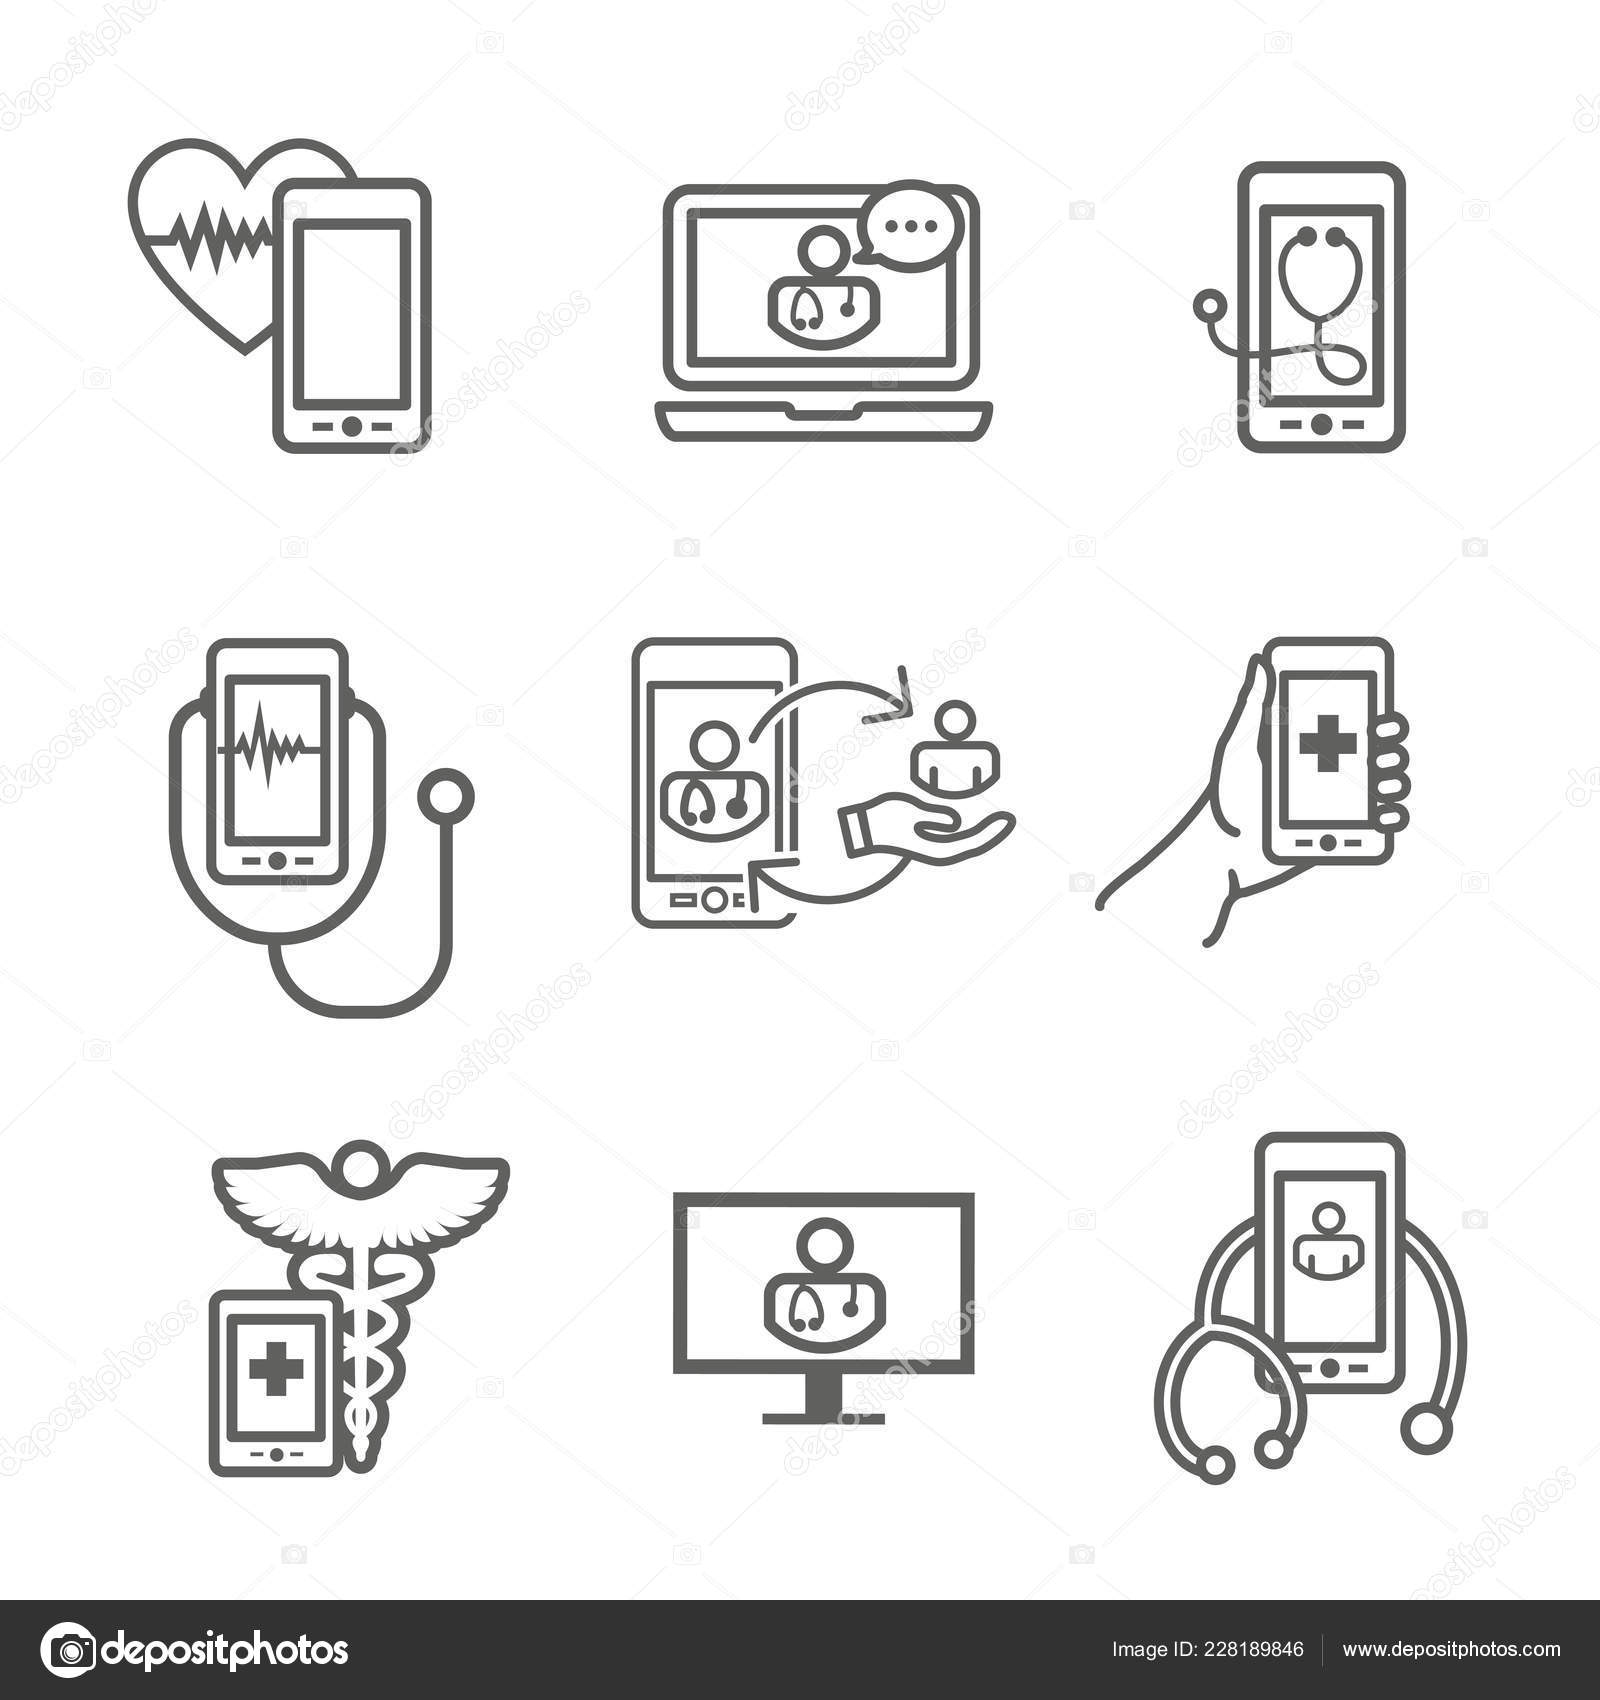 Telemedicine Abstract Idea Icons Illustrating Remote Health Software